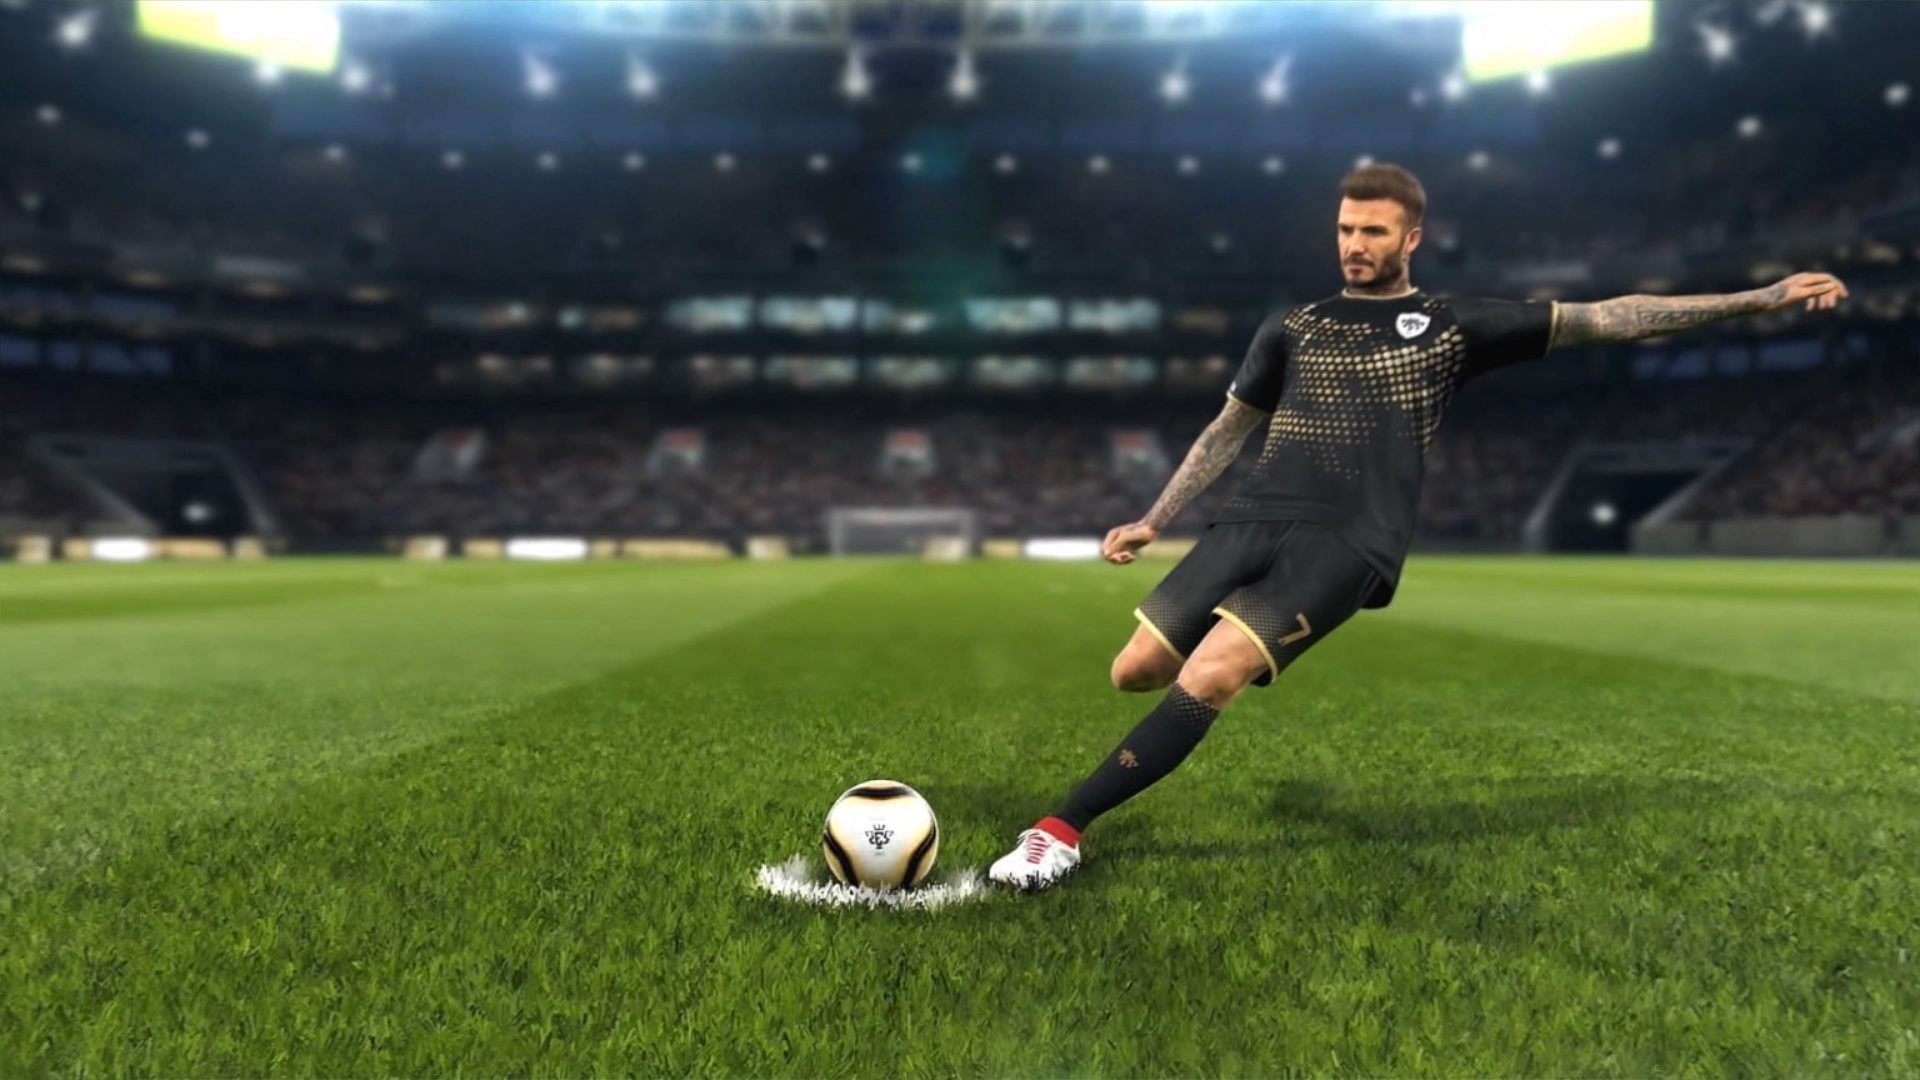 Hole Player Pes 2019